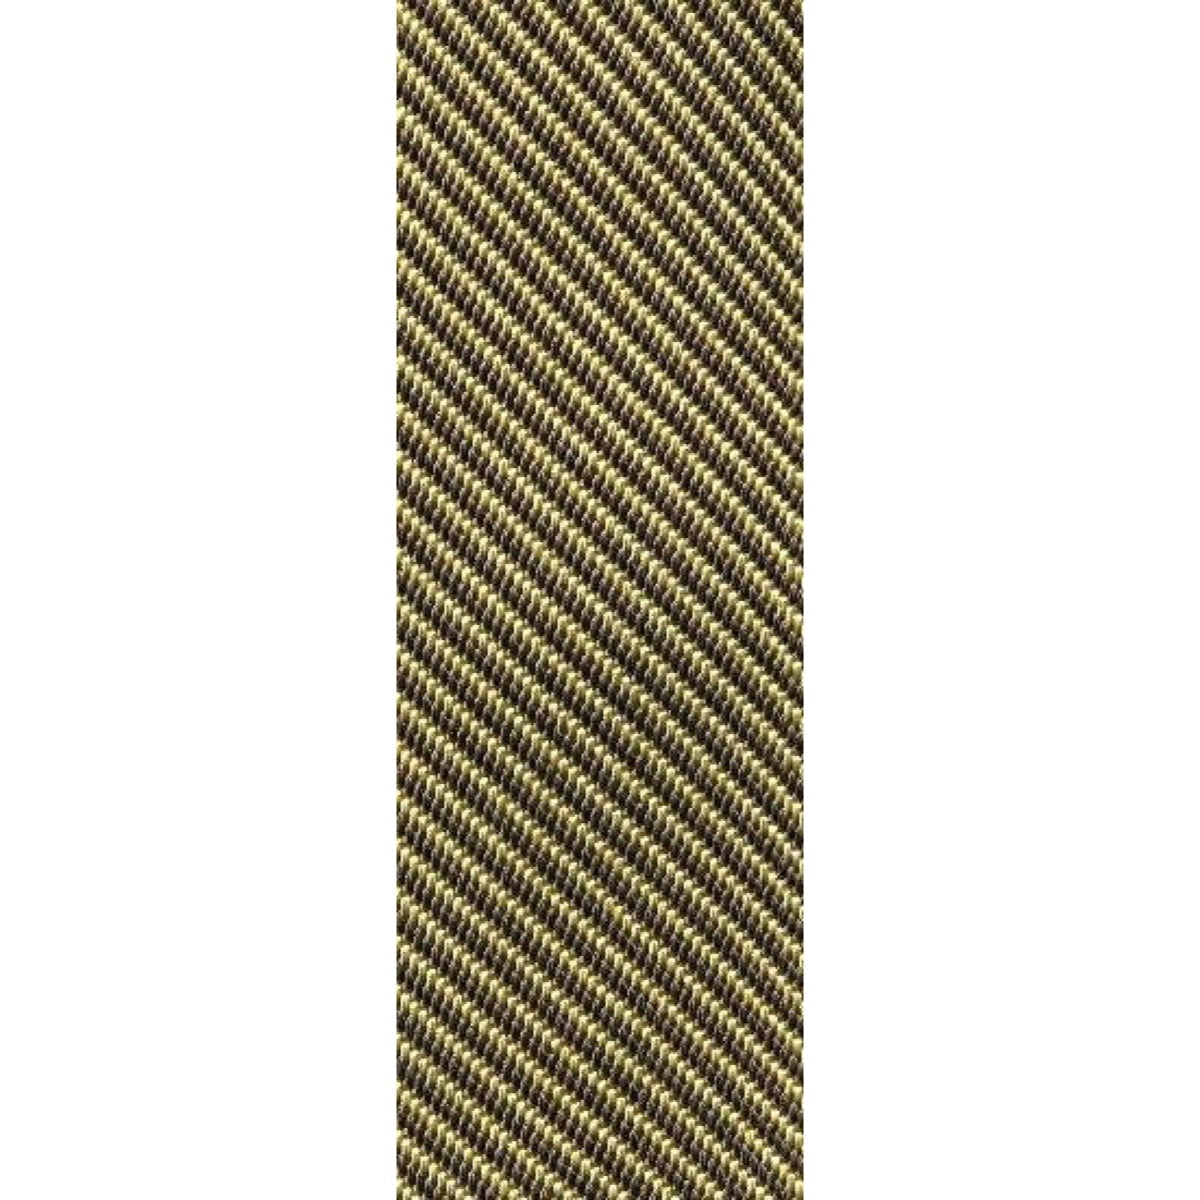 Dunlop Series D38 Nylon Guitar Strap, Tweed Classic